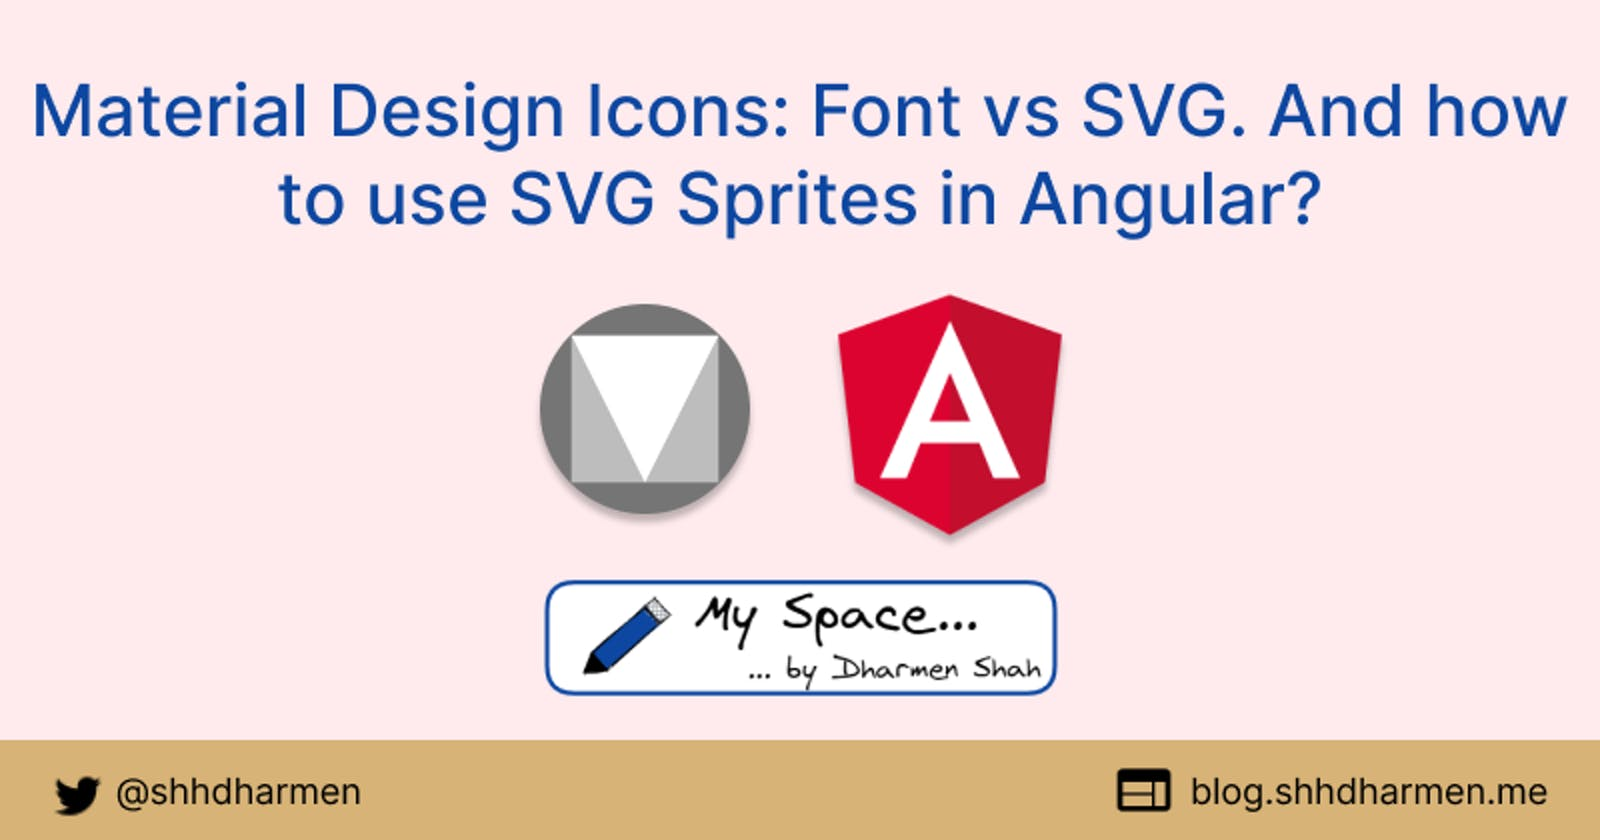 Material Design Icons: Font vs SVG. And how to use SVG Sprites in Angular?